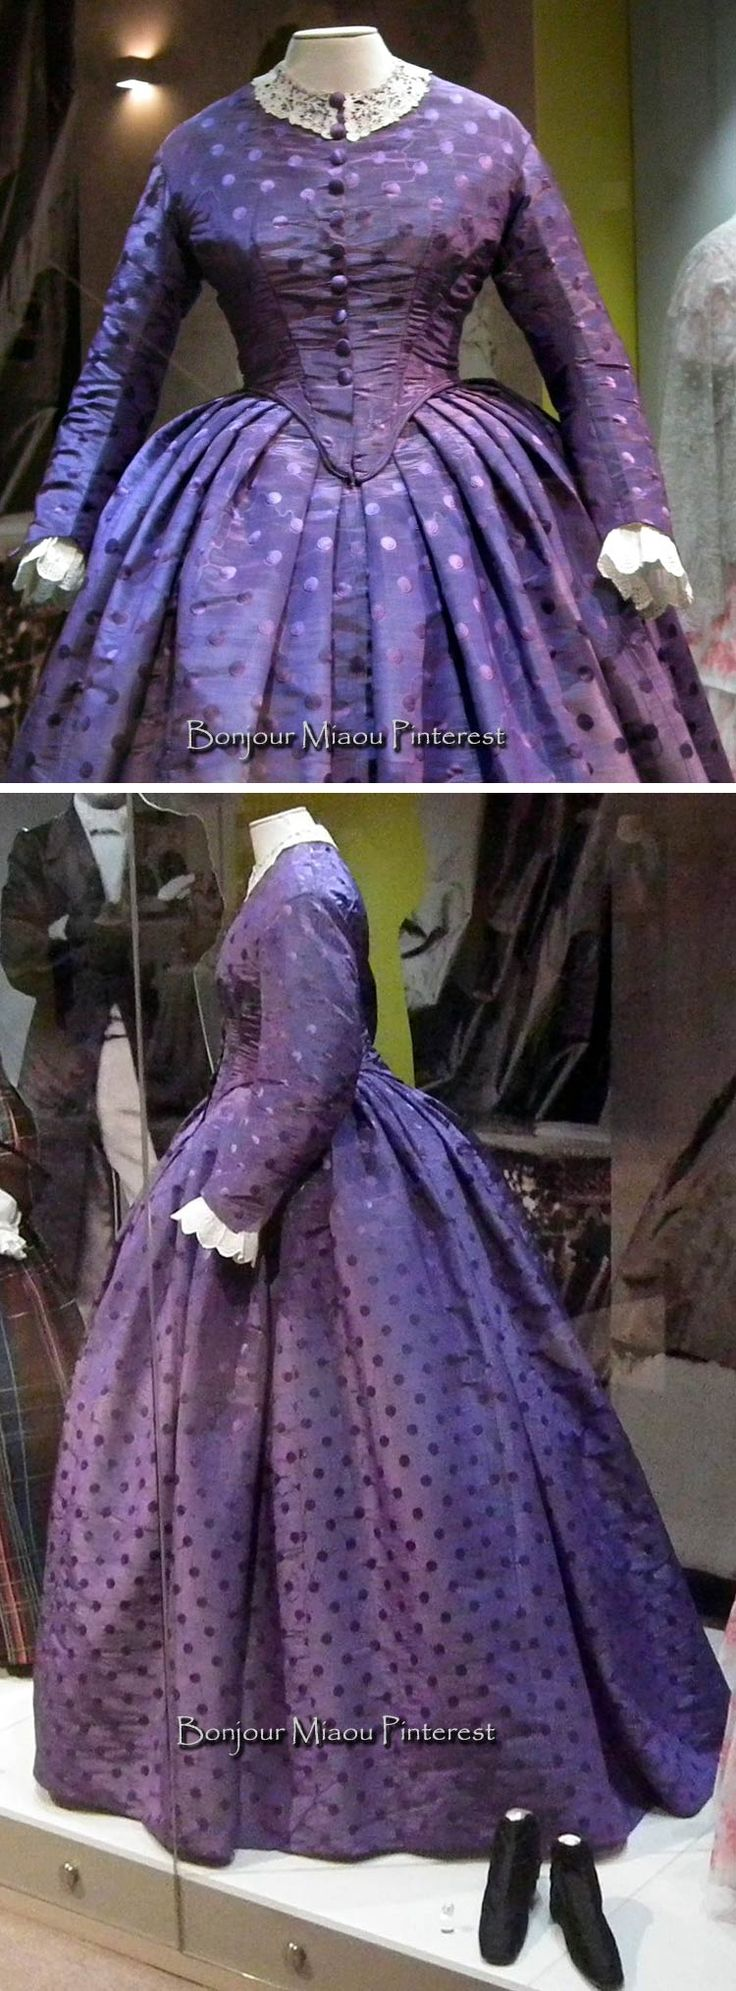 Day dress ca. 1860s, from an exhibit at the Museum of Costume & Lace…